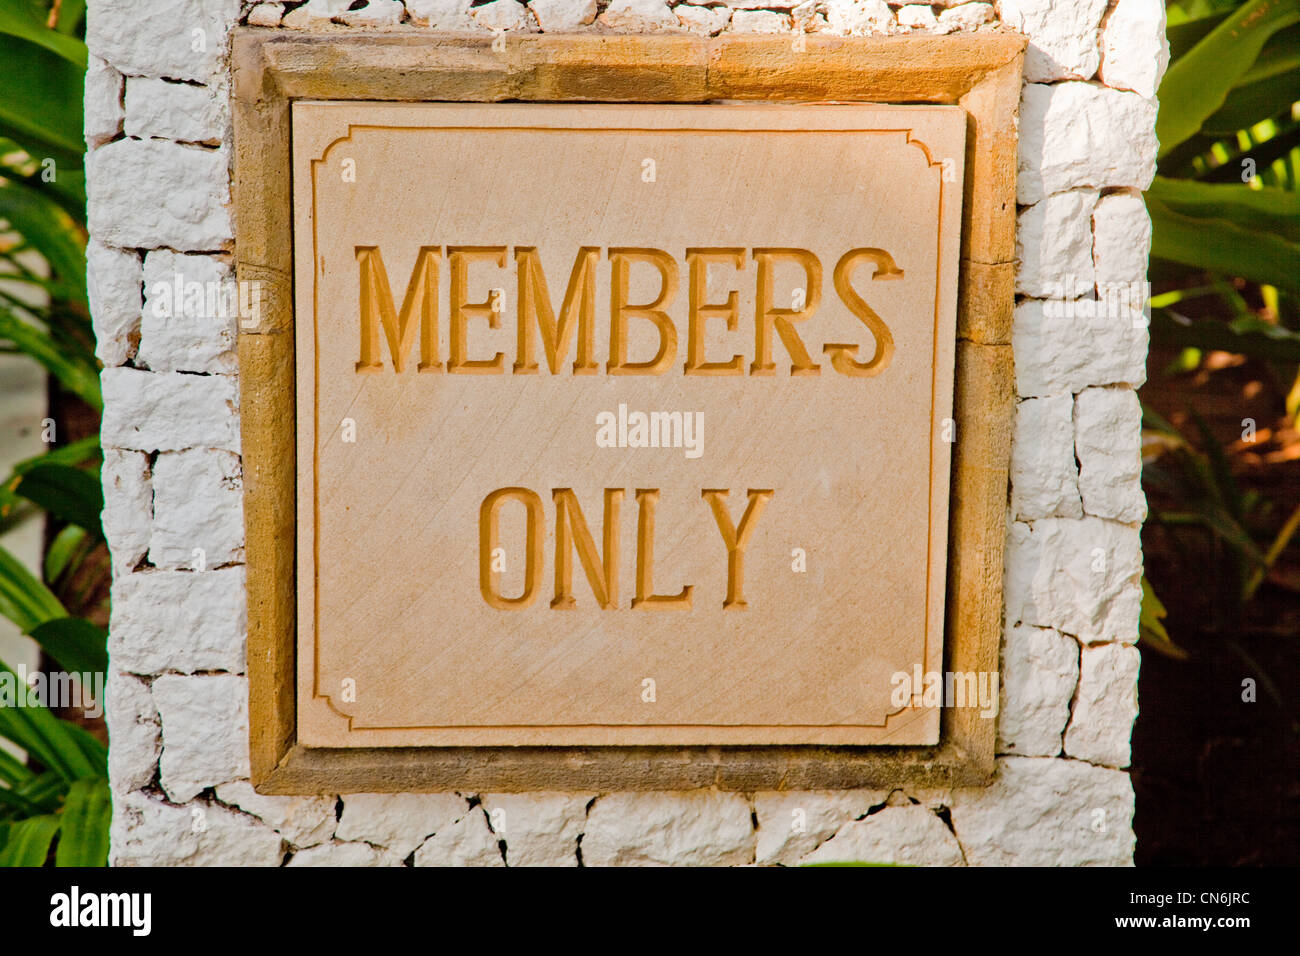 Members only sign - Stock Image